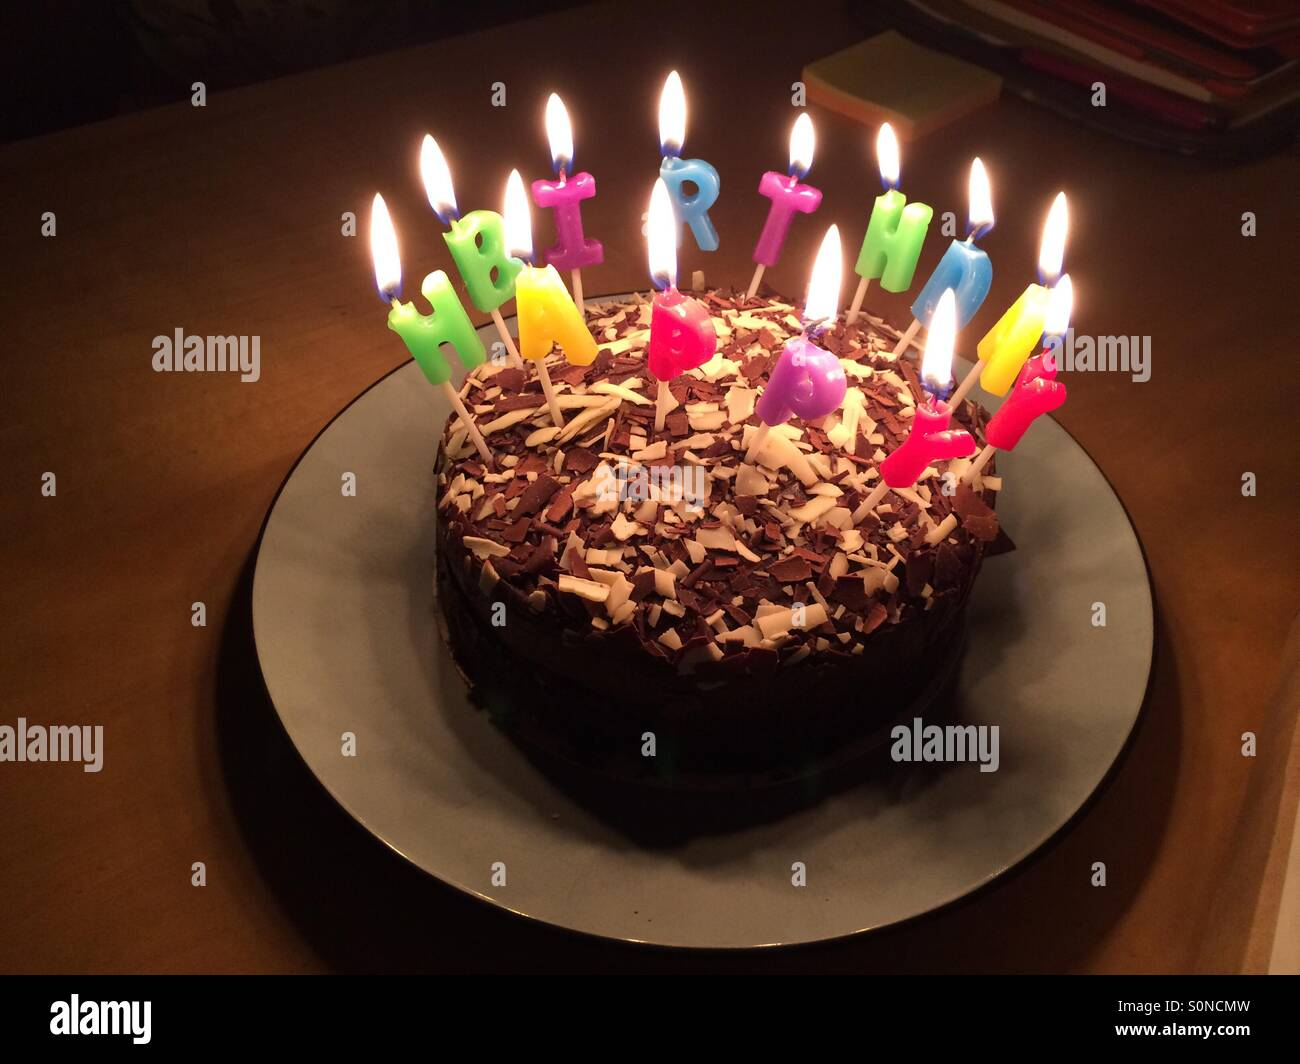 Swell Being The 15 Year Old Birthday Boy Stock Photo 310257609 Alamy Funny Birthday Cards Online Inifofree Goldxyz